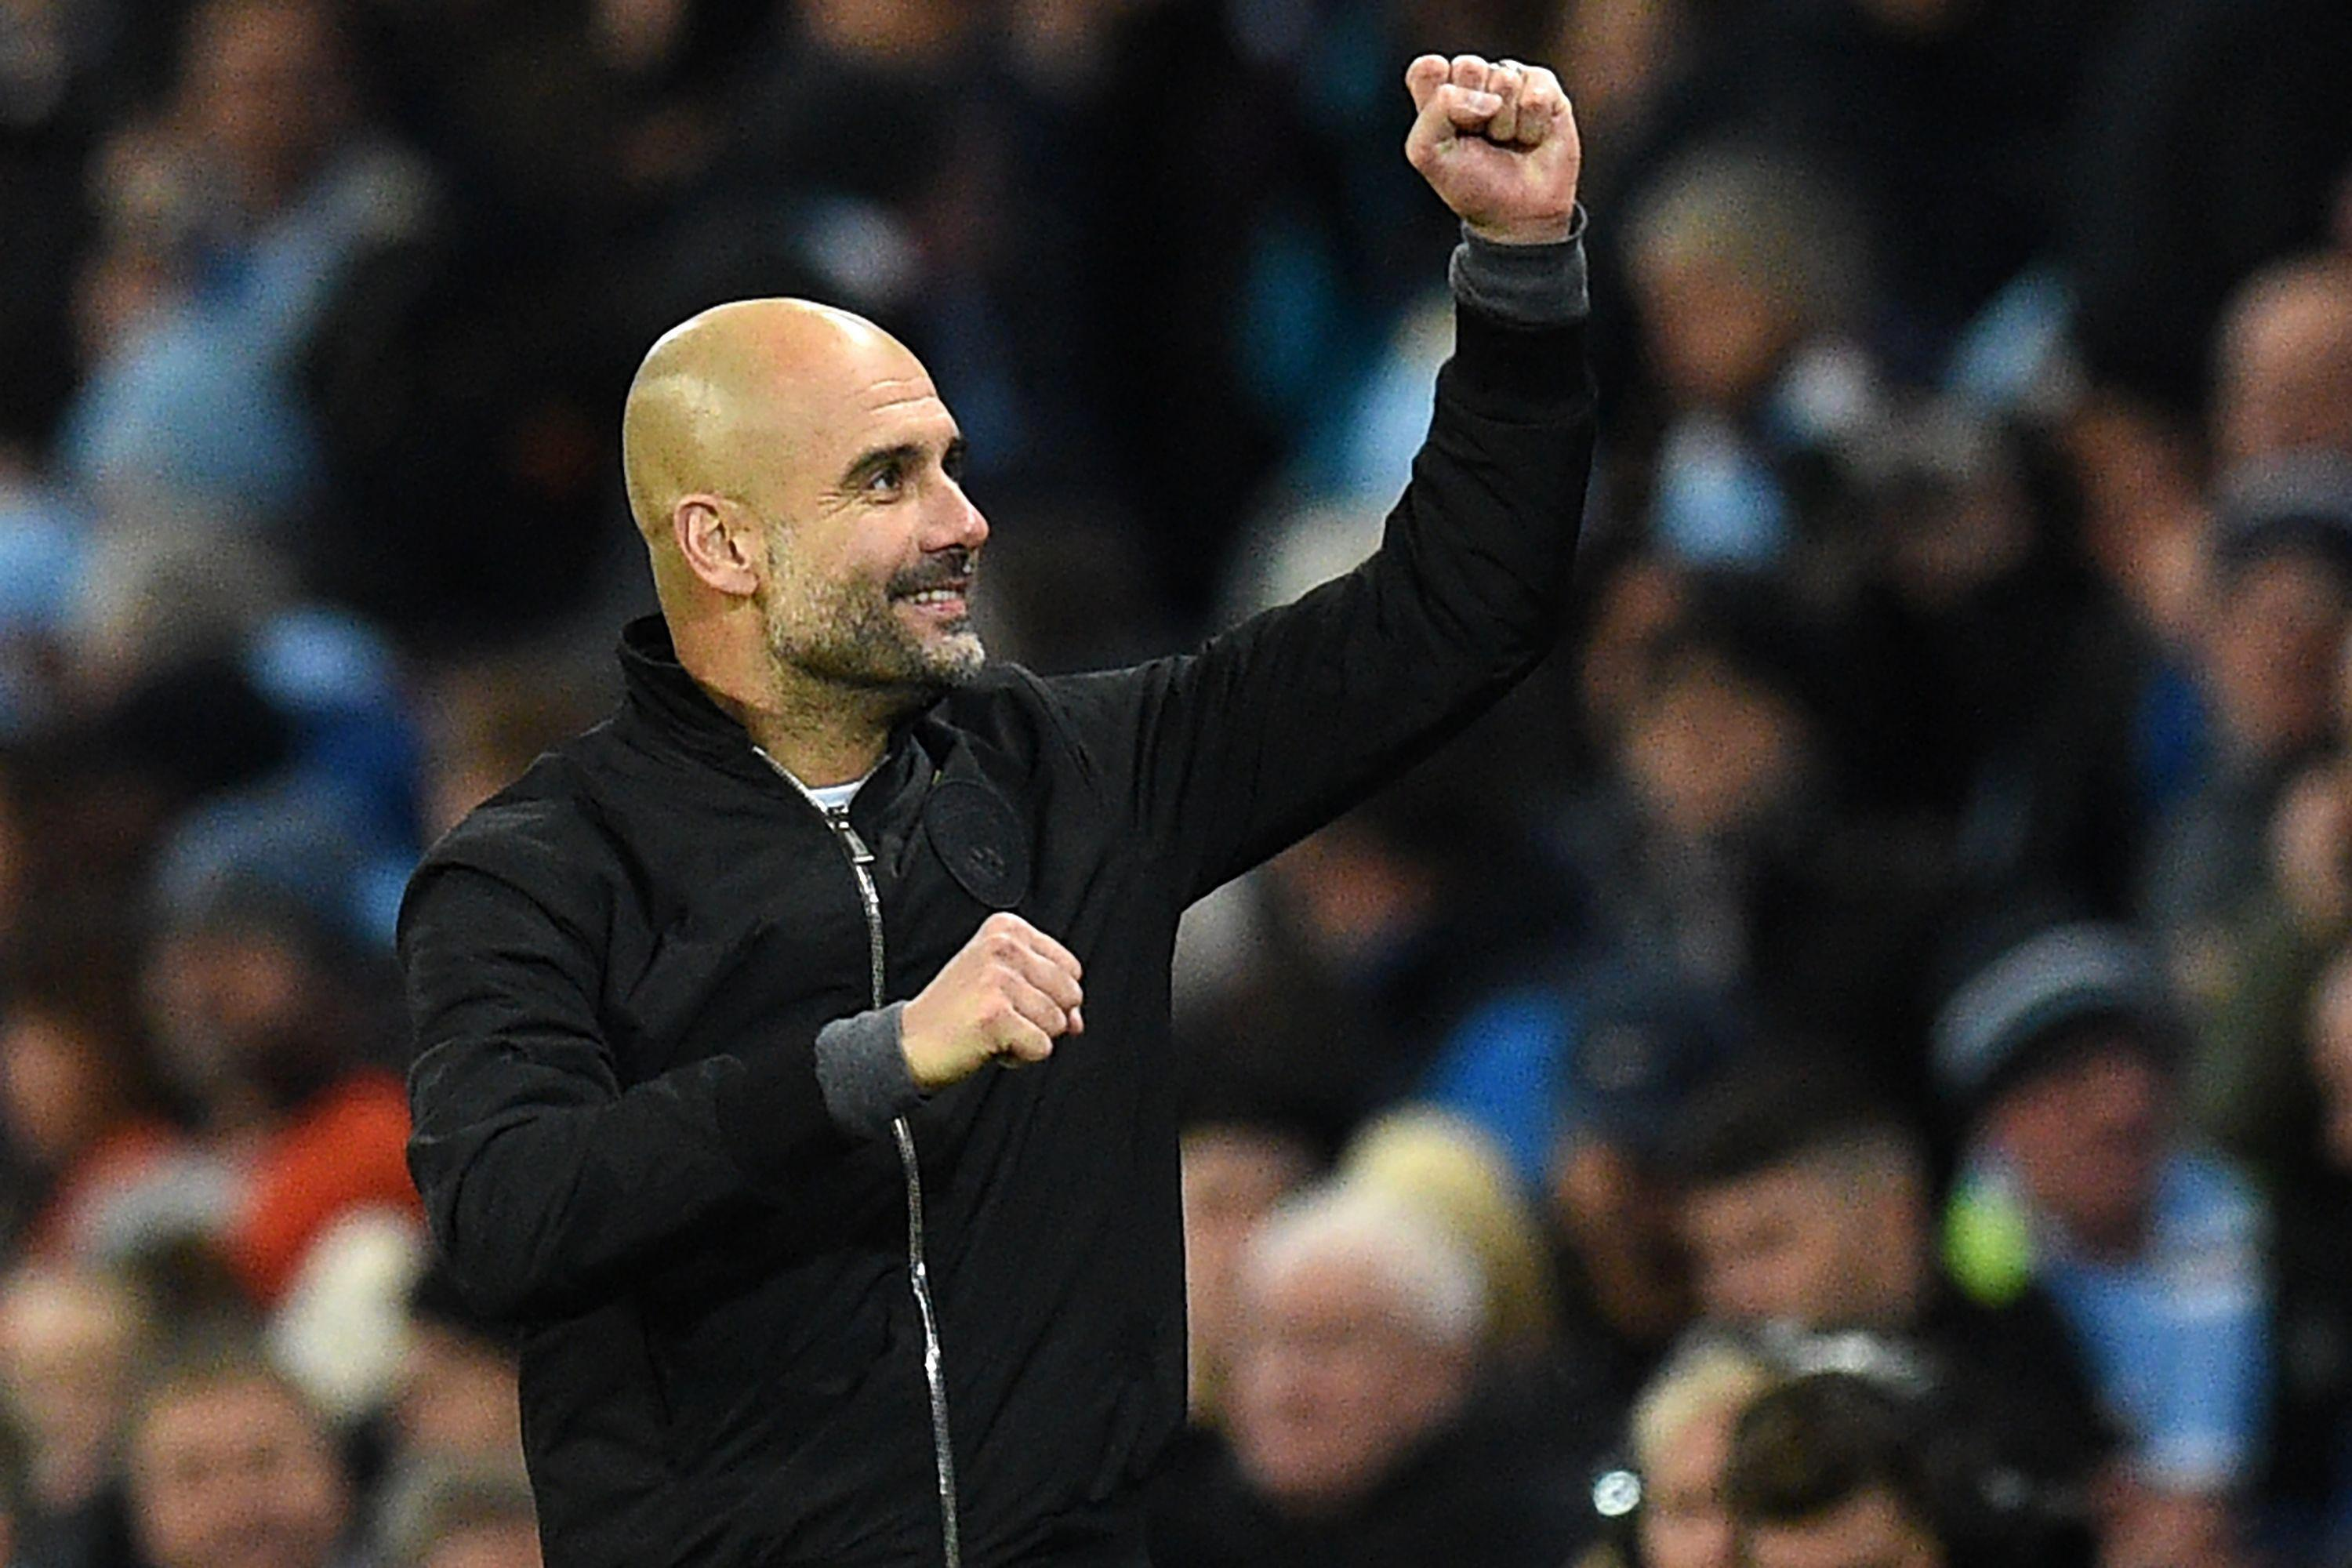 Pep Guardiola has little to be down in the dumps about this season